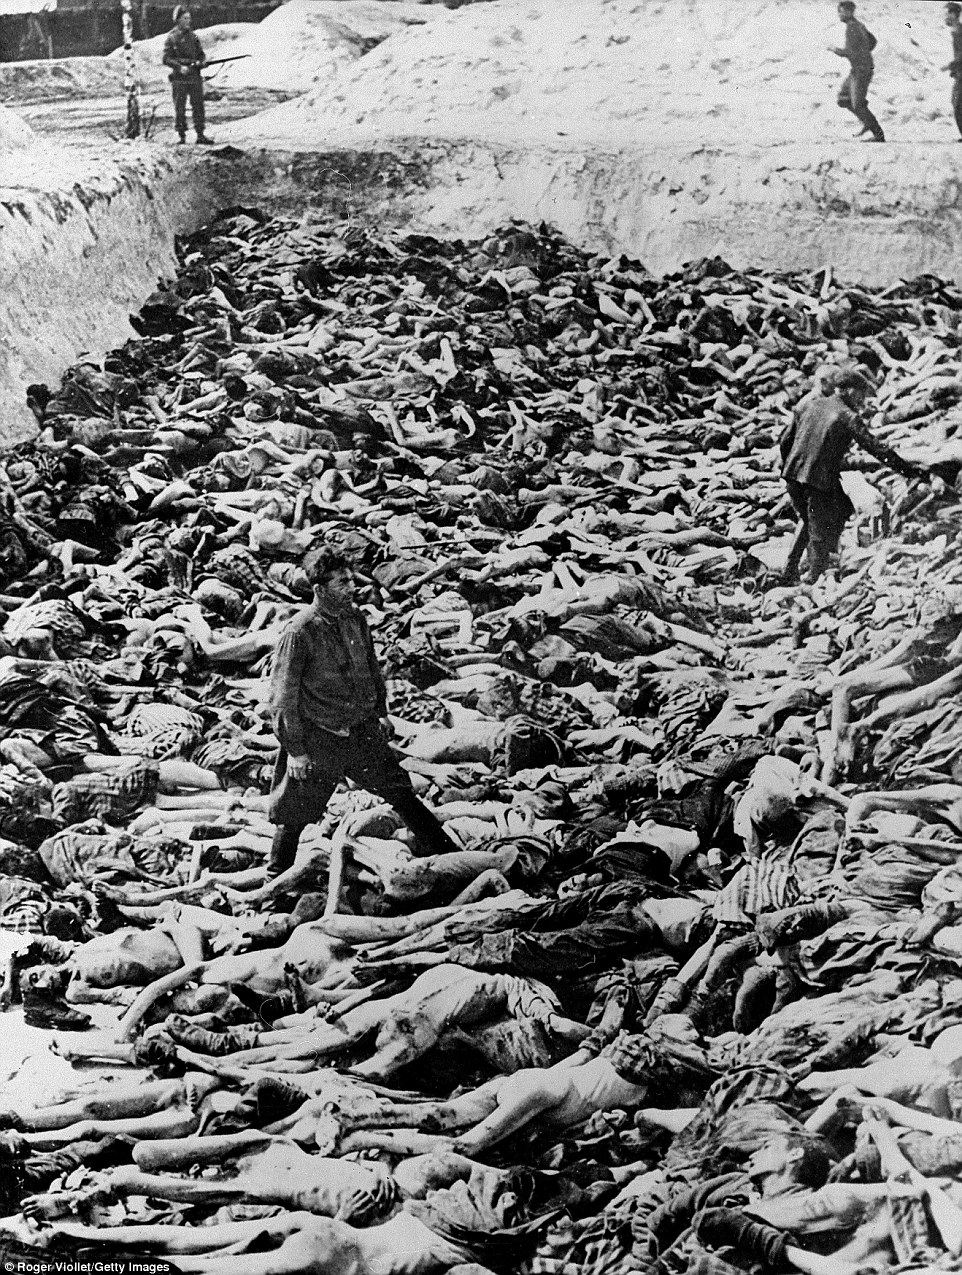 April 1945: Fritz Klein, a Nazi camp doctor who conducted medical experiments on prisoners during the Holocaust, stands among corpses in a mass grave after the liberation of Bergen-Belsen, Germany. Of the 38,500 inmates found barely alive after liberation, about 28,000 subsequently died. Watched by British soldiers, Klein is pictured here being forced to bury the dead. That December, he was sentenced to death and hanged for his role in the atrocities. Bergen-Belsen was the first Nazi camp to be liberated - and gave the world some of the first visual evidence of the horrors of the Holocaust